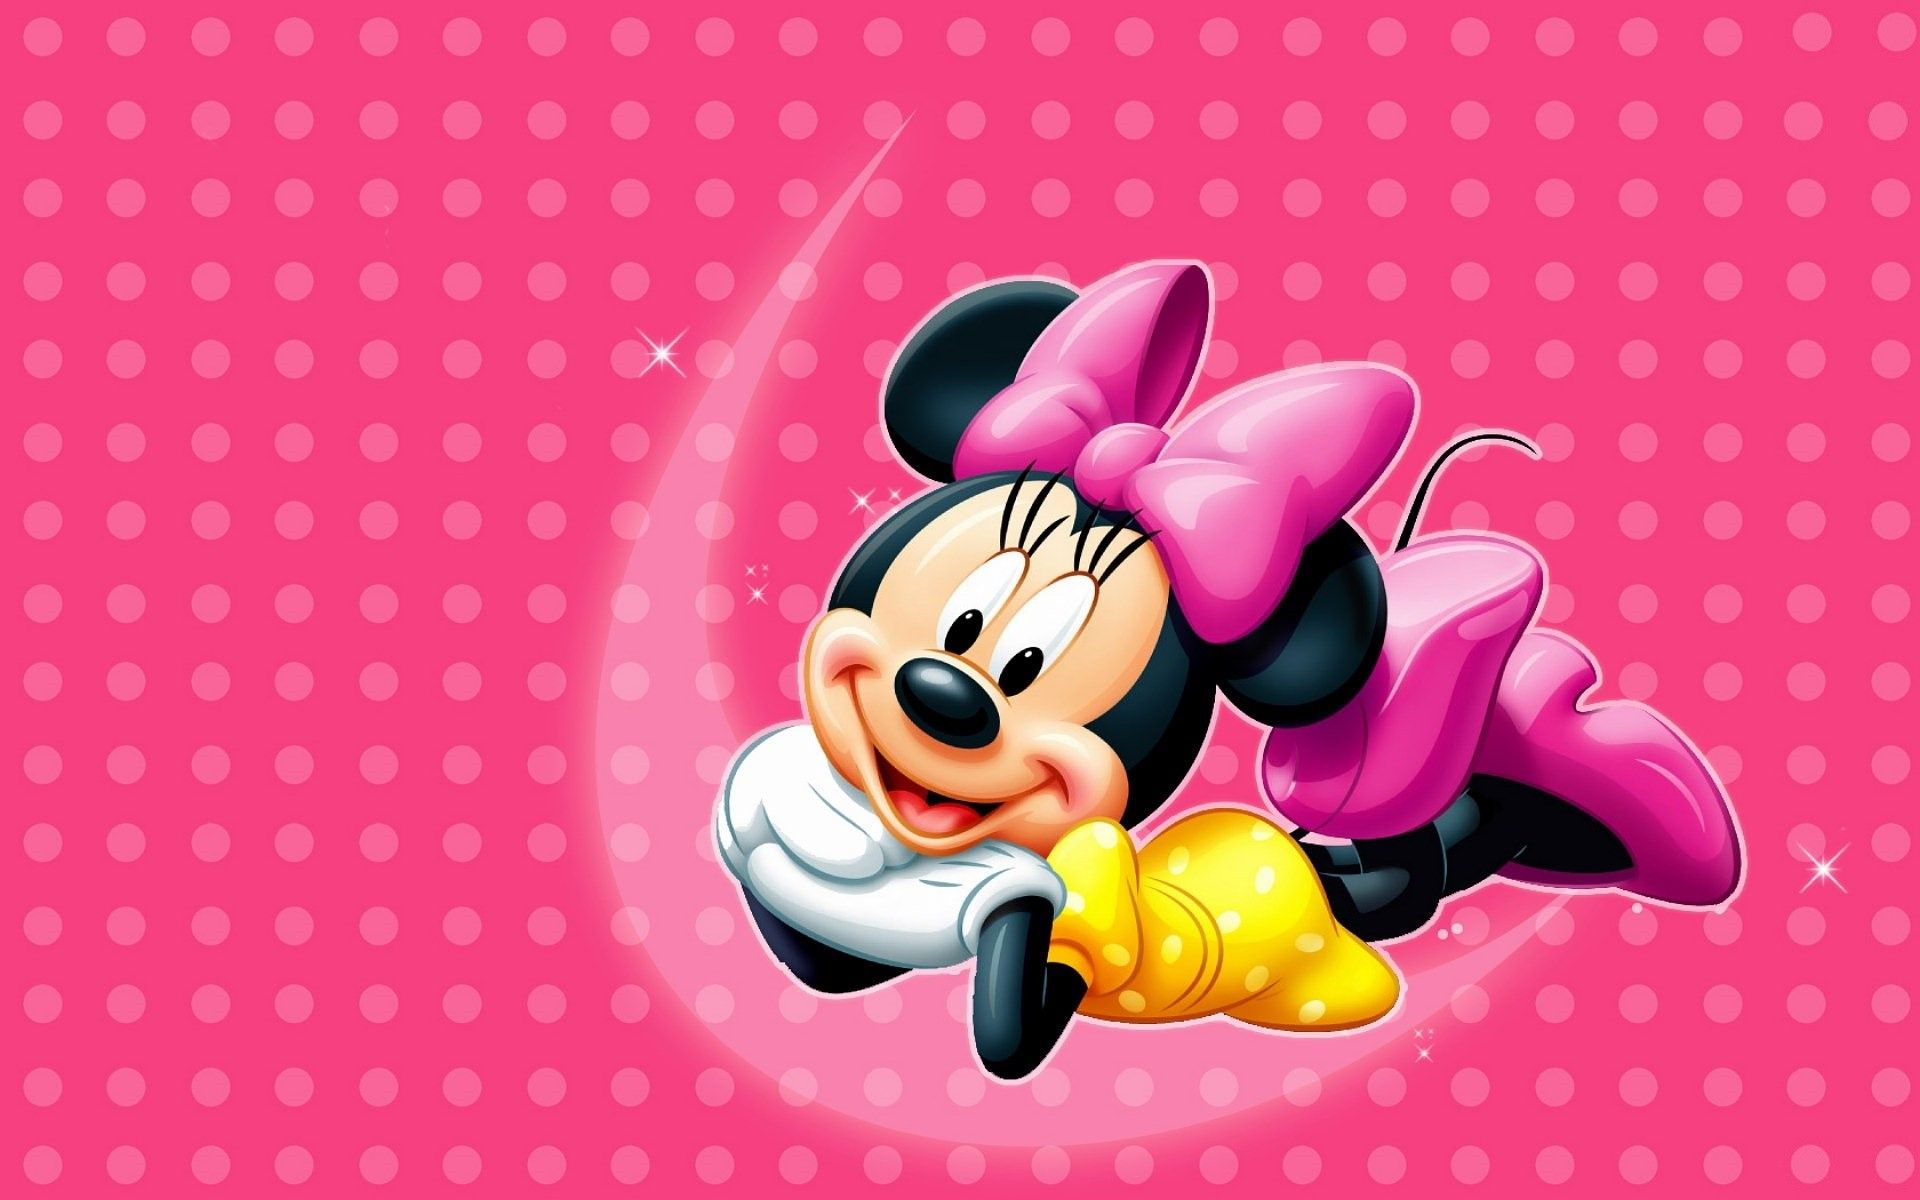 1920x1200 Minnie Mouse background ·① Download free amazing backgrounds for ...